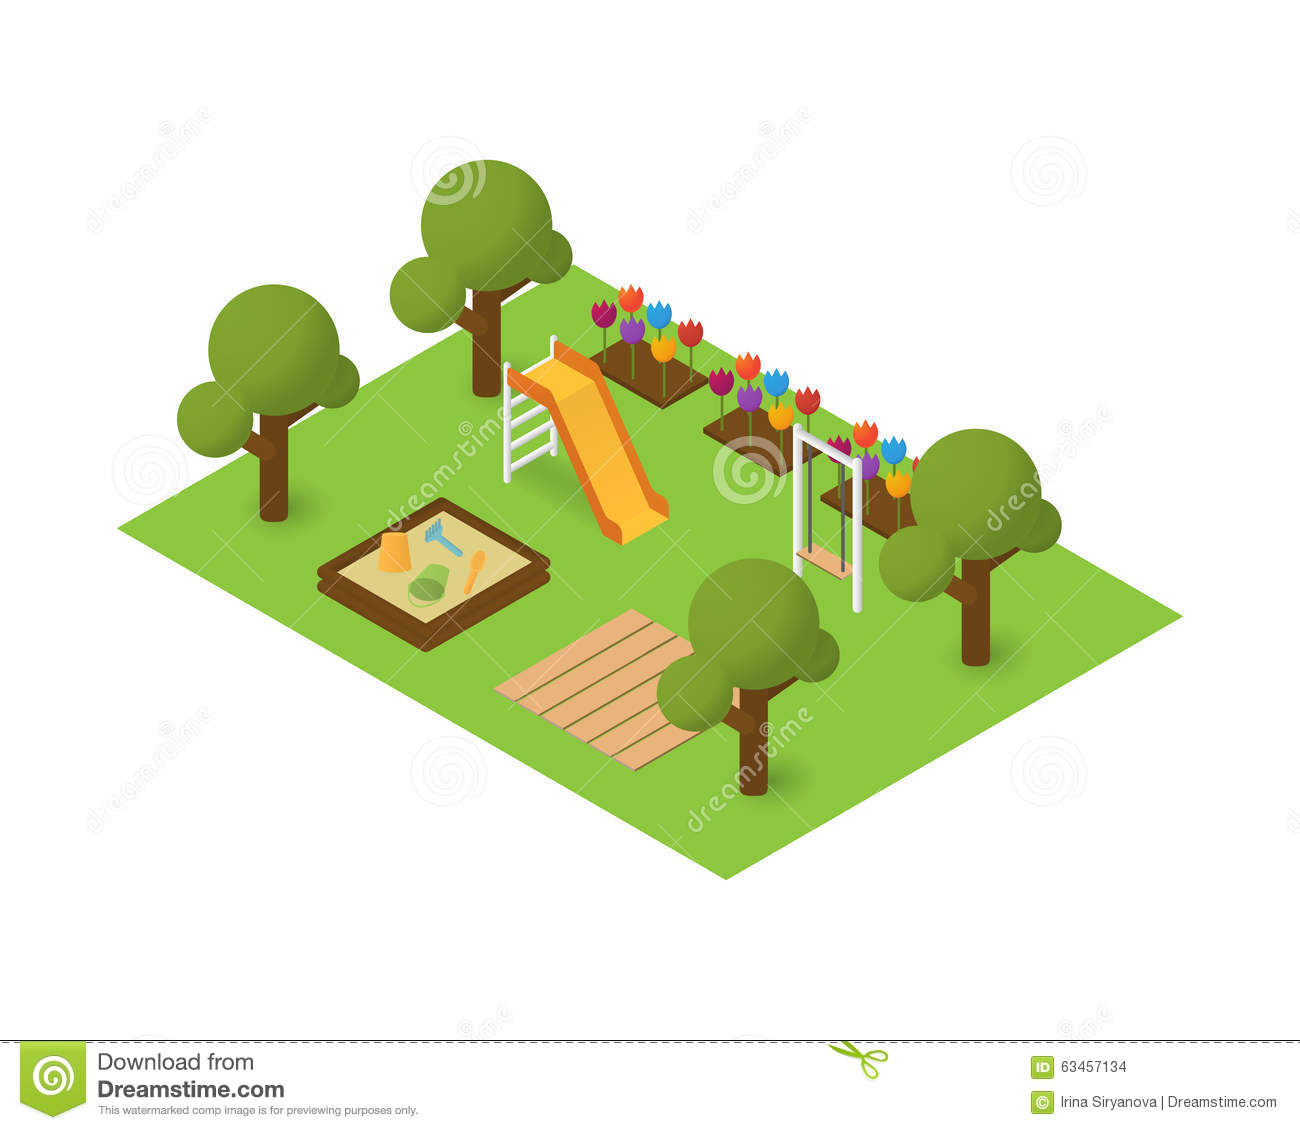 3d exterior design free download with Stock Illustration Vector Isometric Playground Flat Building Map Icon Image63457134 on 646 as well Royalty Free Stock Photo Patterns Lino Image15013415 likewise Royalty Free Stock Photos 3d Render Modern Building Image5328208 as well Royalty Free Stock Photo Small Modern Dressing Room Made Pink Hangers Shelves Image34053565 moreover Royalty Free Stock Photography City Typography Artwork Image14308807.